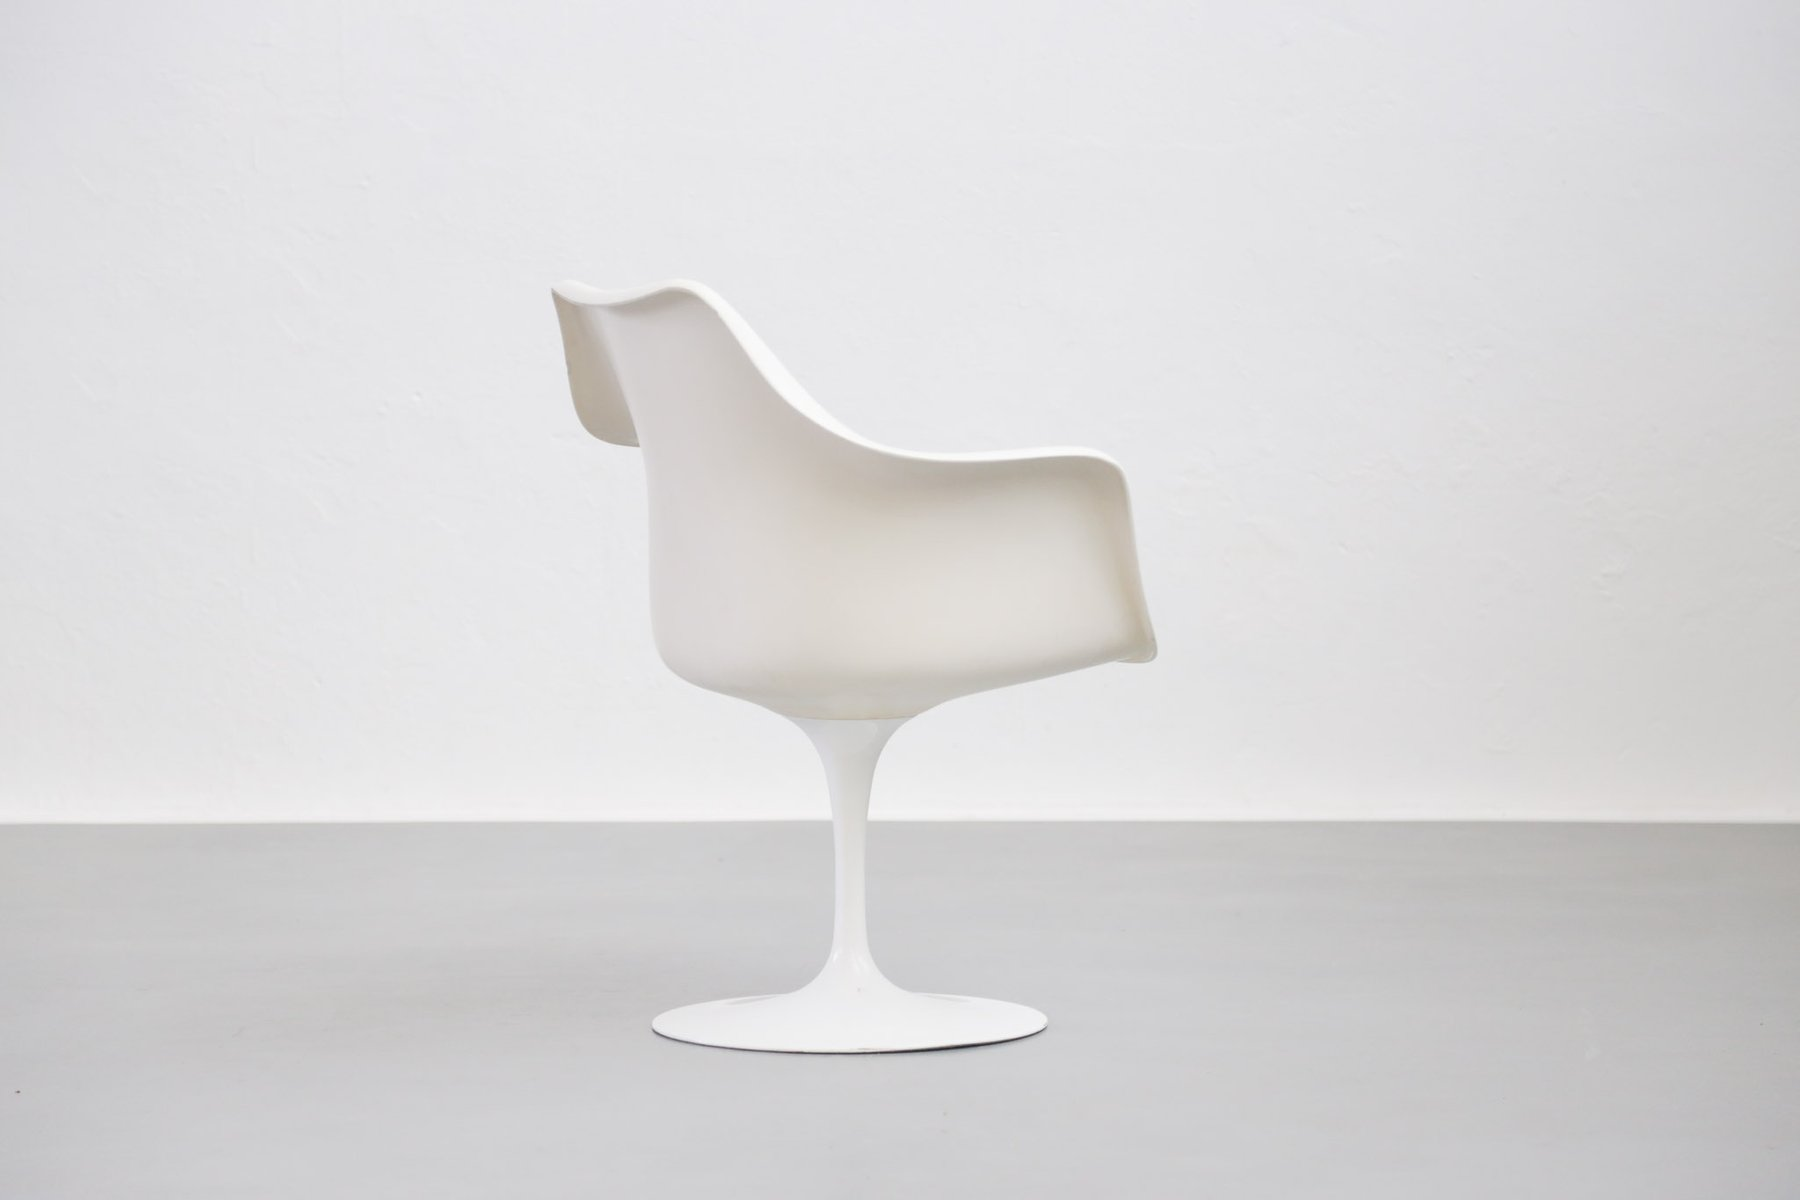 Mid century international tulip arm chair by eero saarinen for Eero saarinen tulip armchair